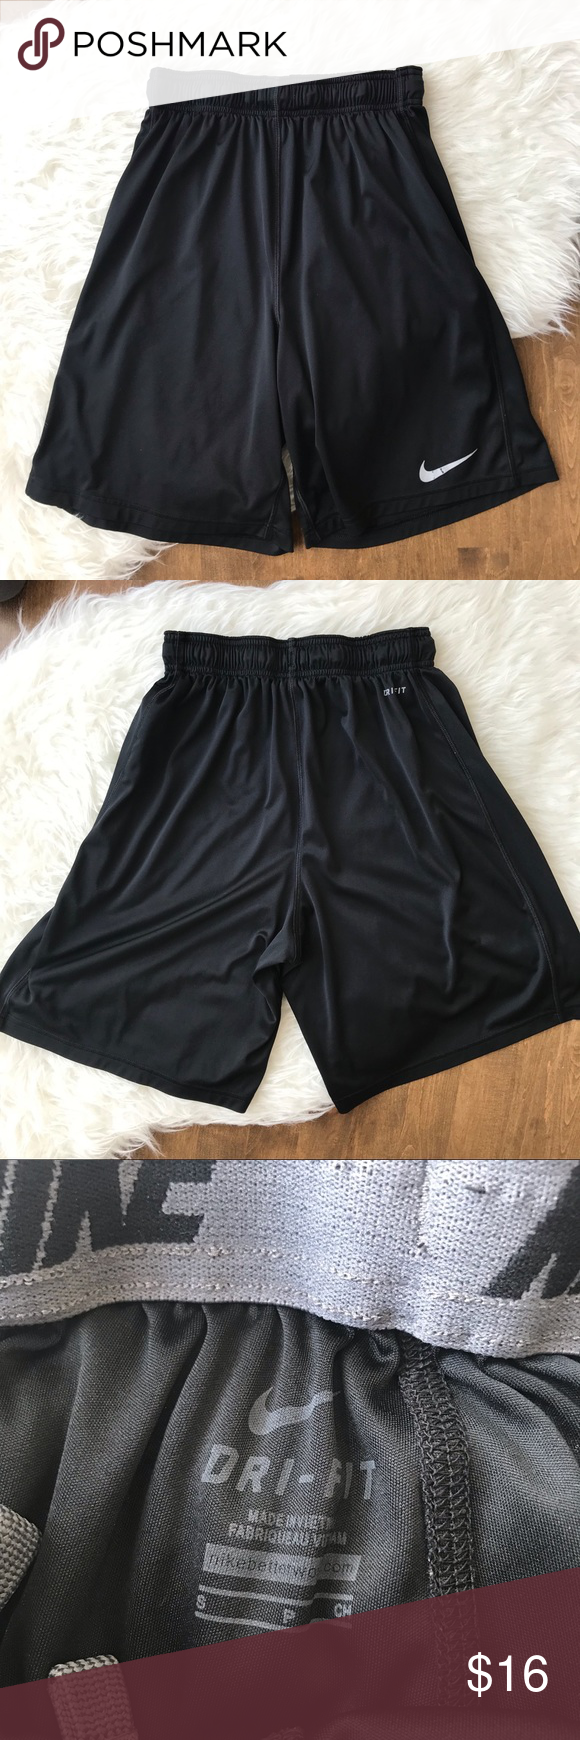 e947fb04450c Nike team fly Dri-fit black shorts long loose fit Basketball shorts from  Nike. Black with drawstring waist. No liner. Lightweight material.